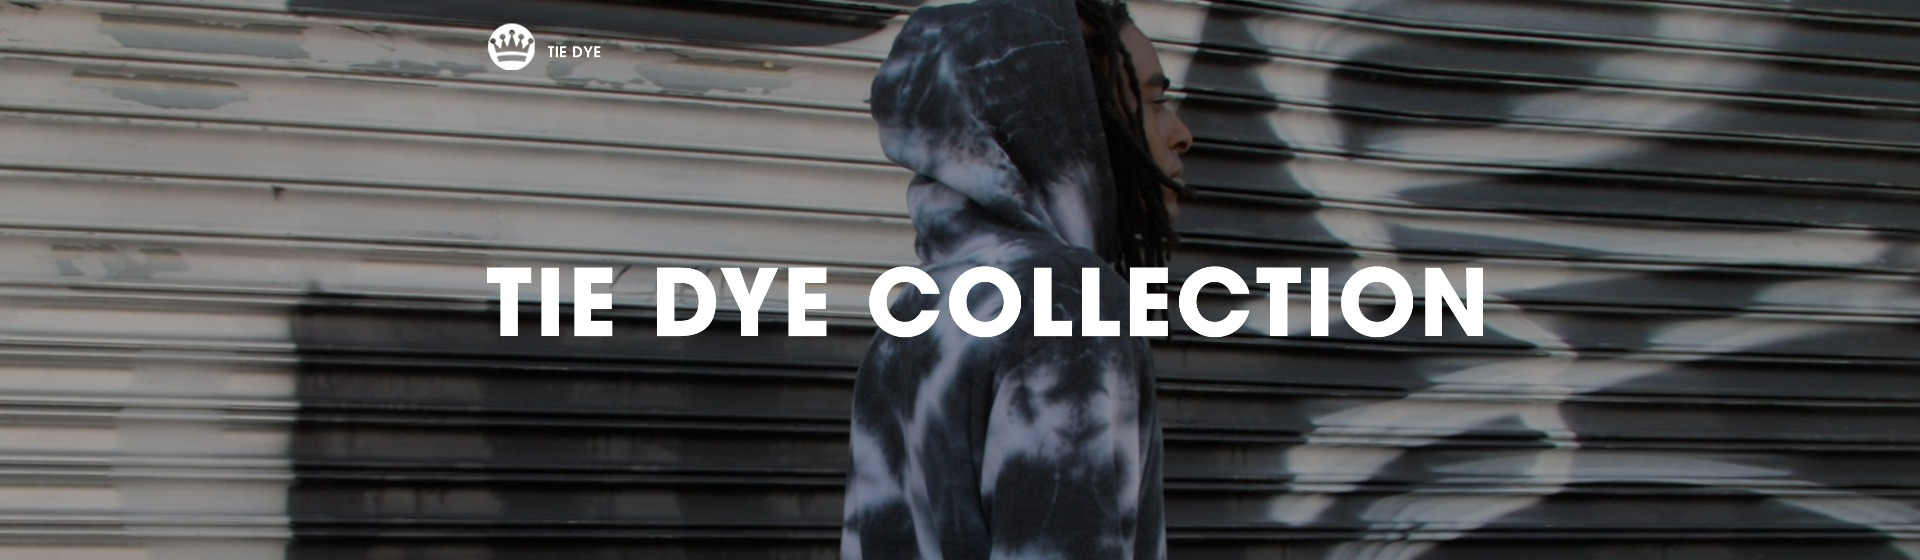 Tie Dye Collection Video